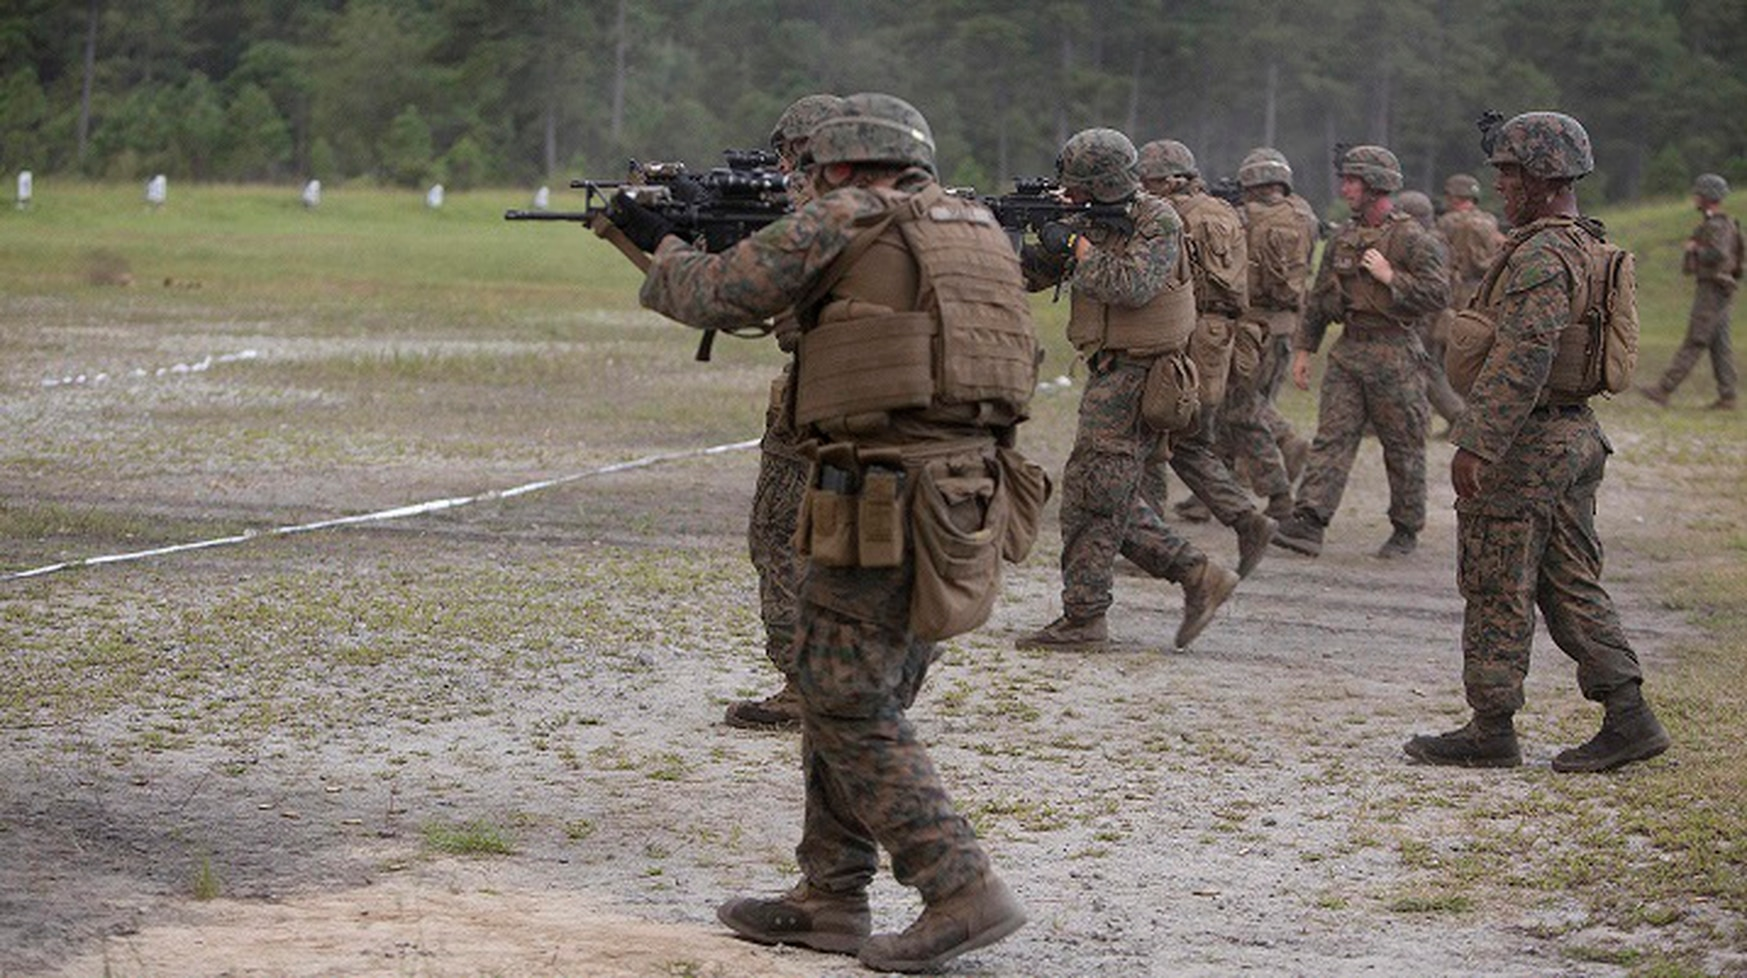 The Marine Corps is looking for lighter protective plates for Marines' body armor. (Pfc. Nicholas Guevara)